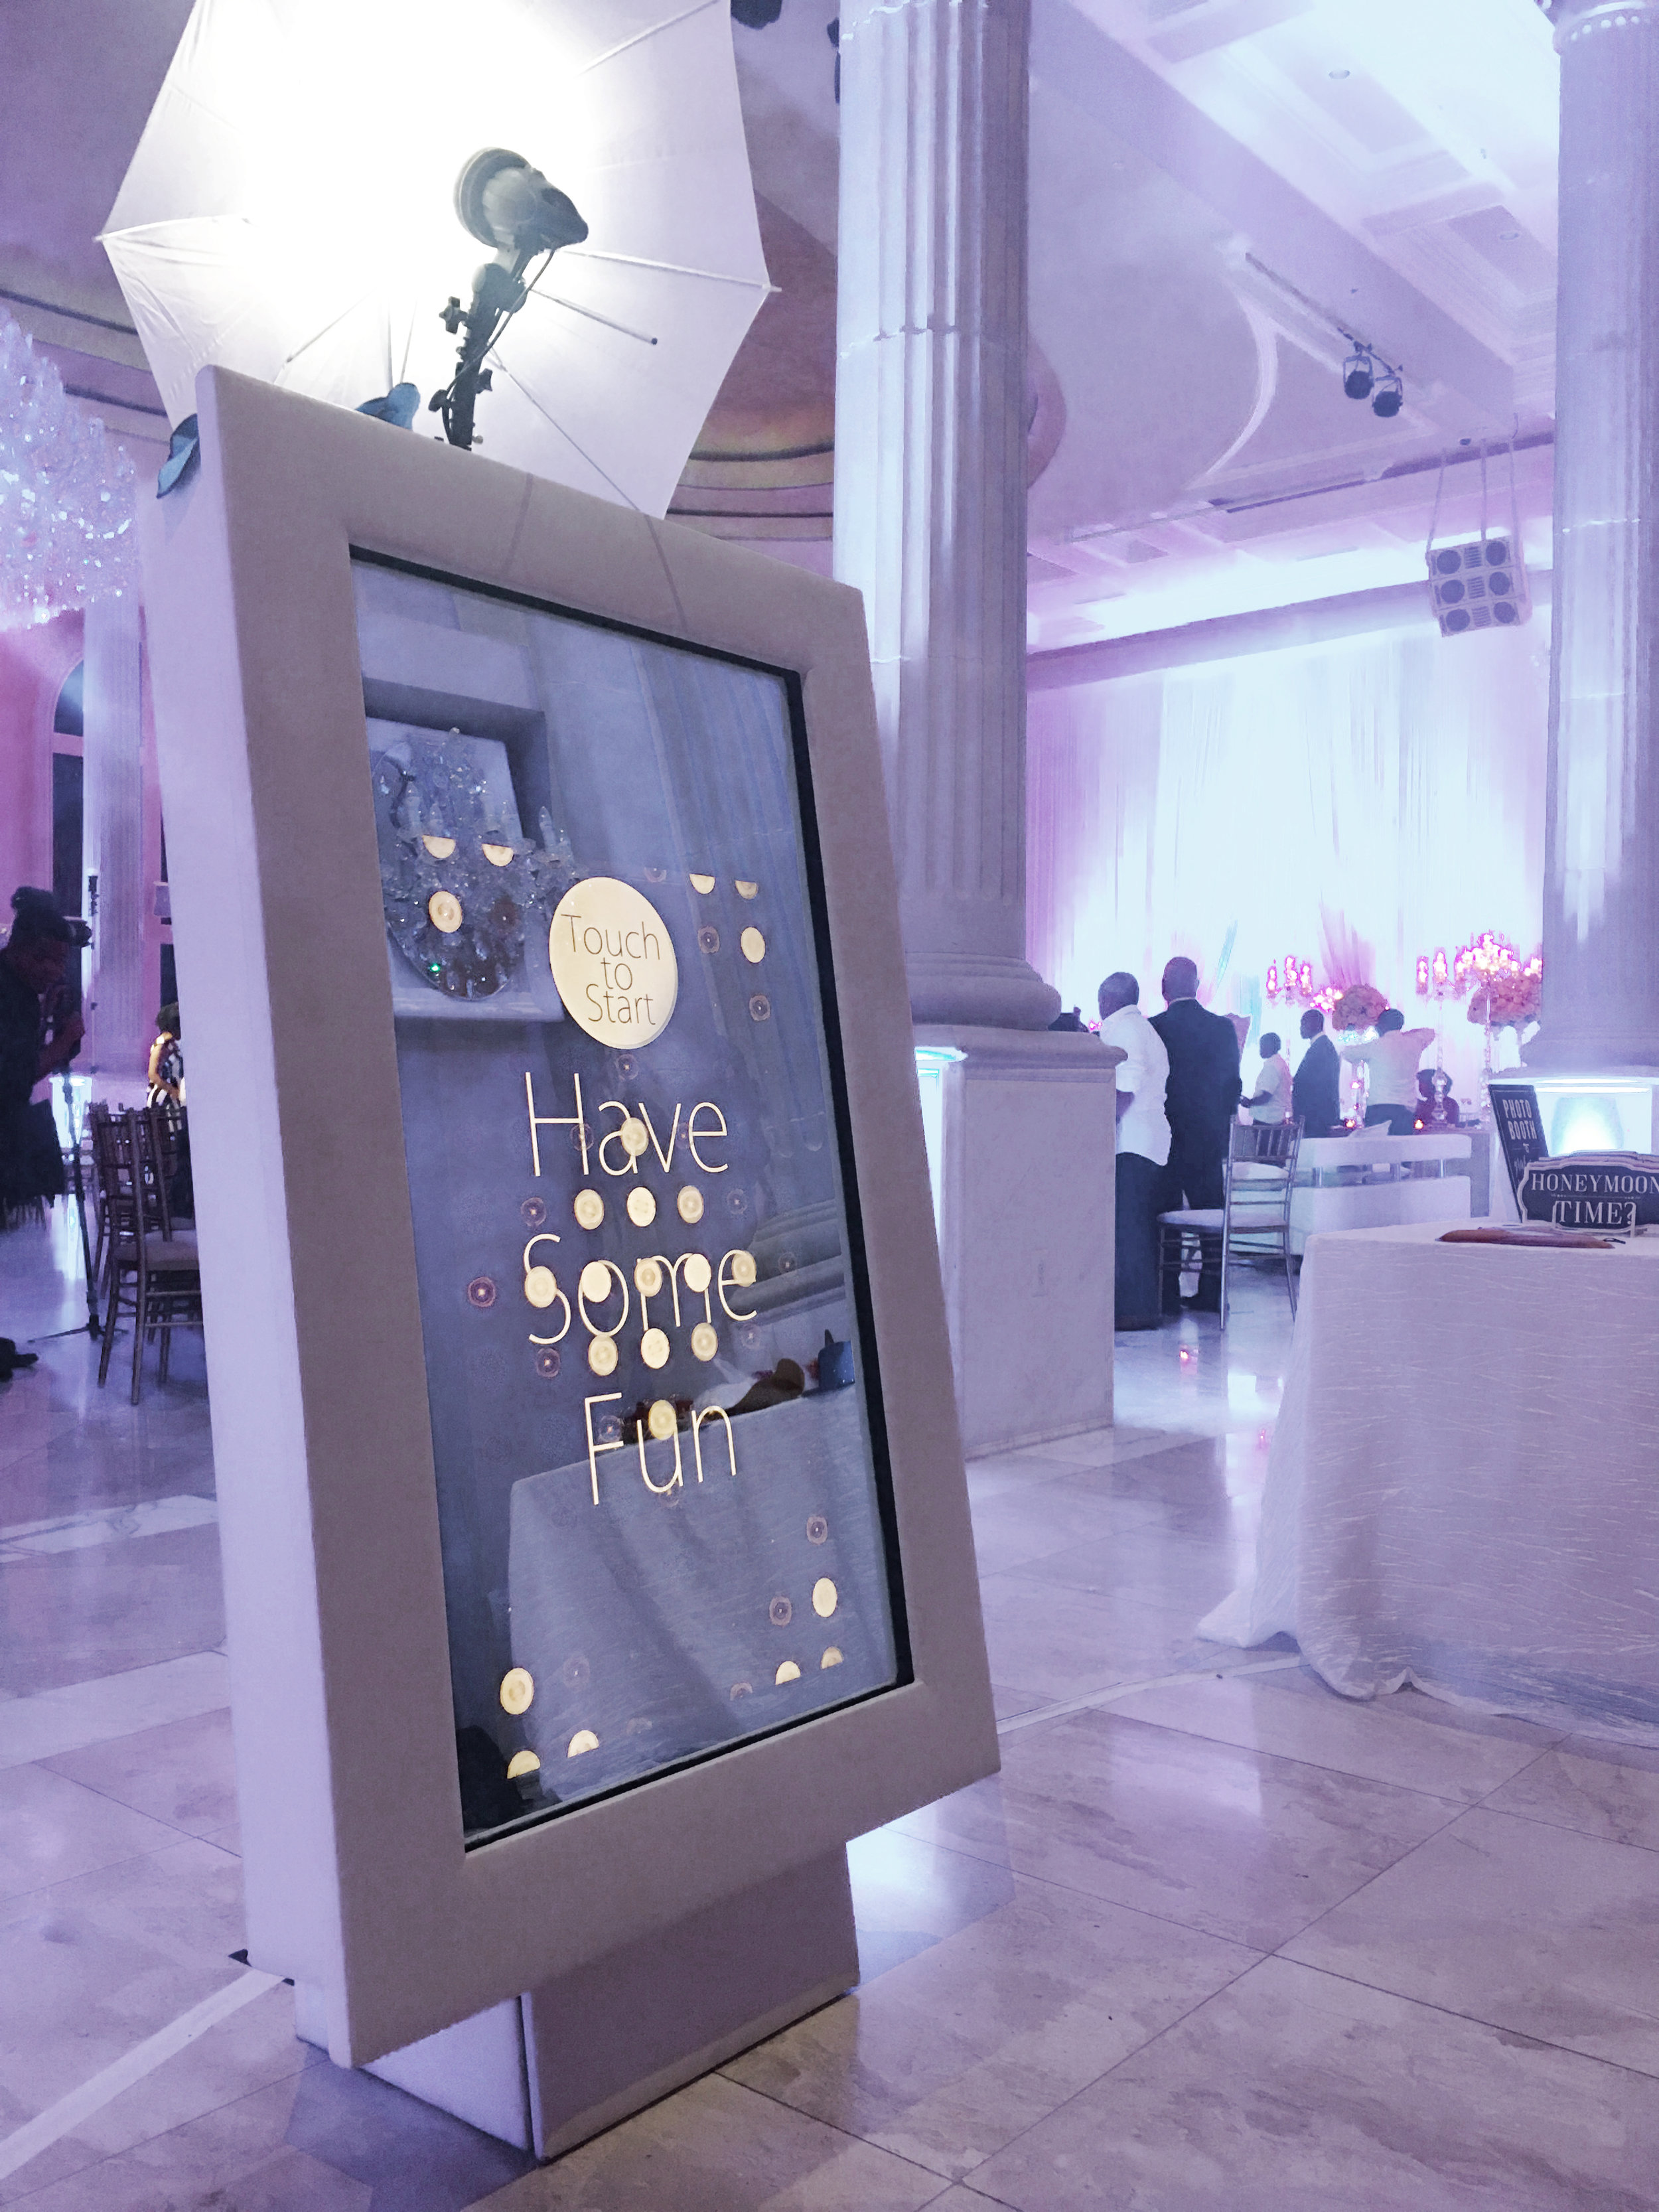 MAGIC SELFIE MIRROR - Take selfies to another level with our one of a kind Magic Selfie Mirror! Standing almost 6' tall, it's elegant design and huge animated touchscreen is sure to turn heads at any event. Book the Magic Selfie Mirror for your next occasion!